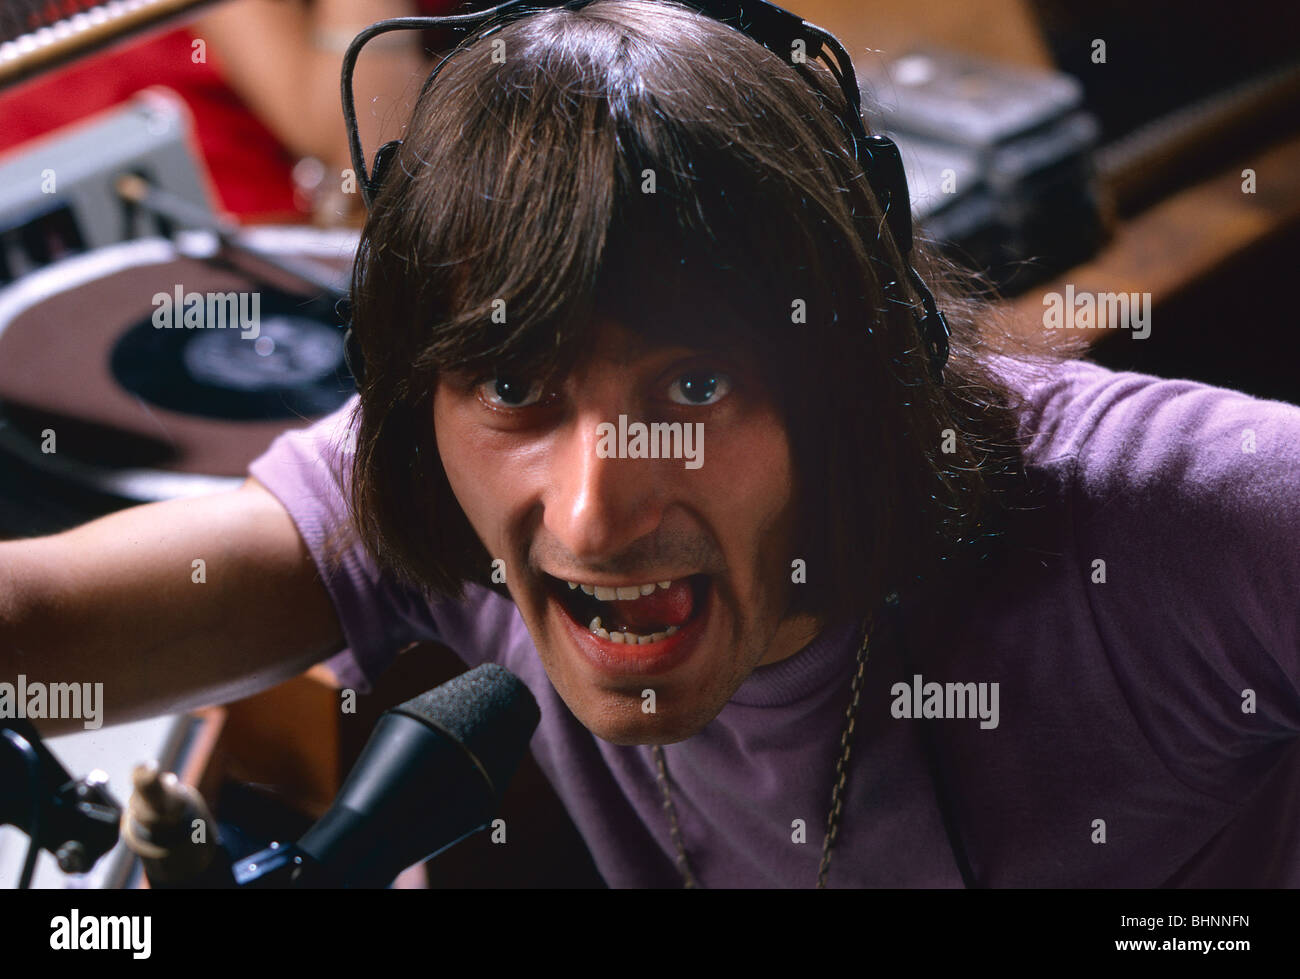 Stuart Henry disc jockey at BBC radio 1 studios London 'Swinging 60s' - Stock Image